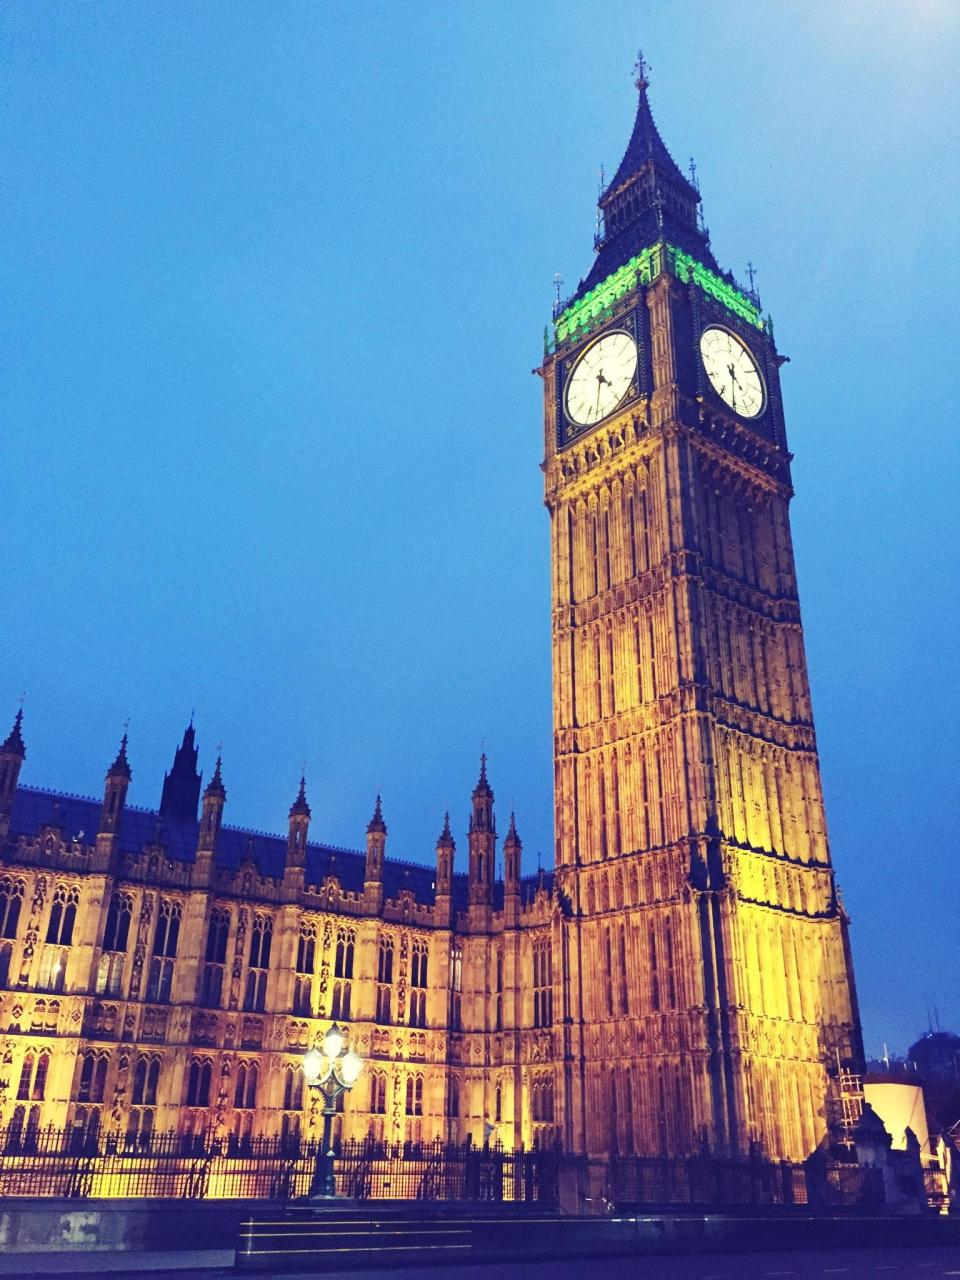 Big Ben is one of London's most iconic landmarks, and is believed to be the most photographed building in Britain